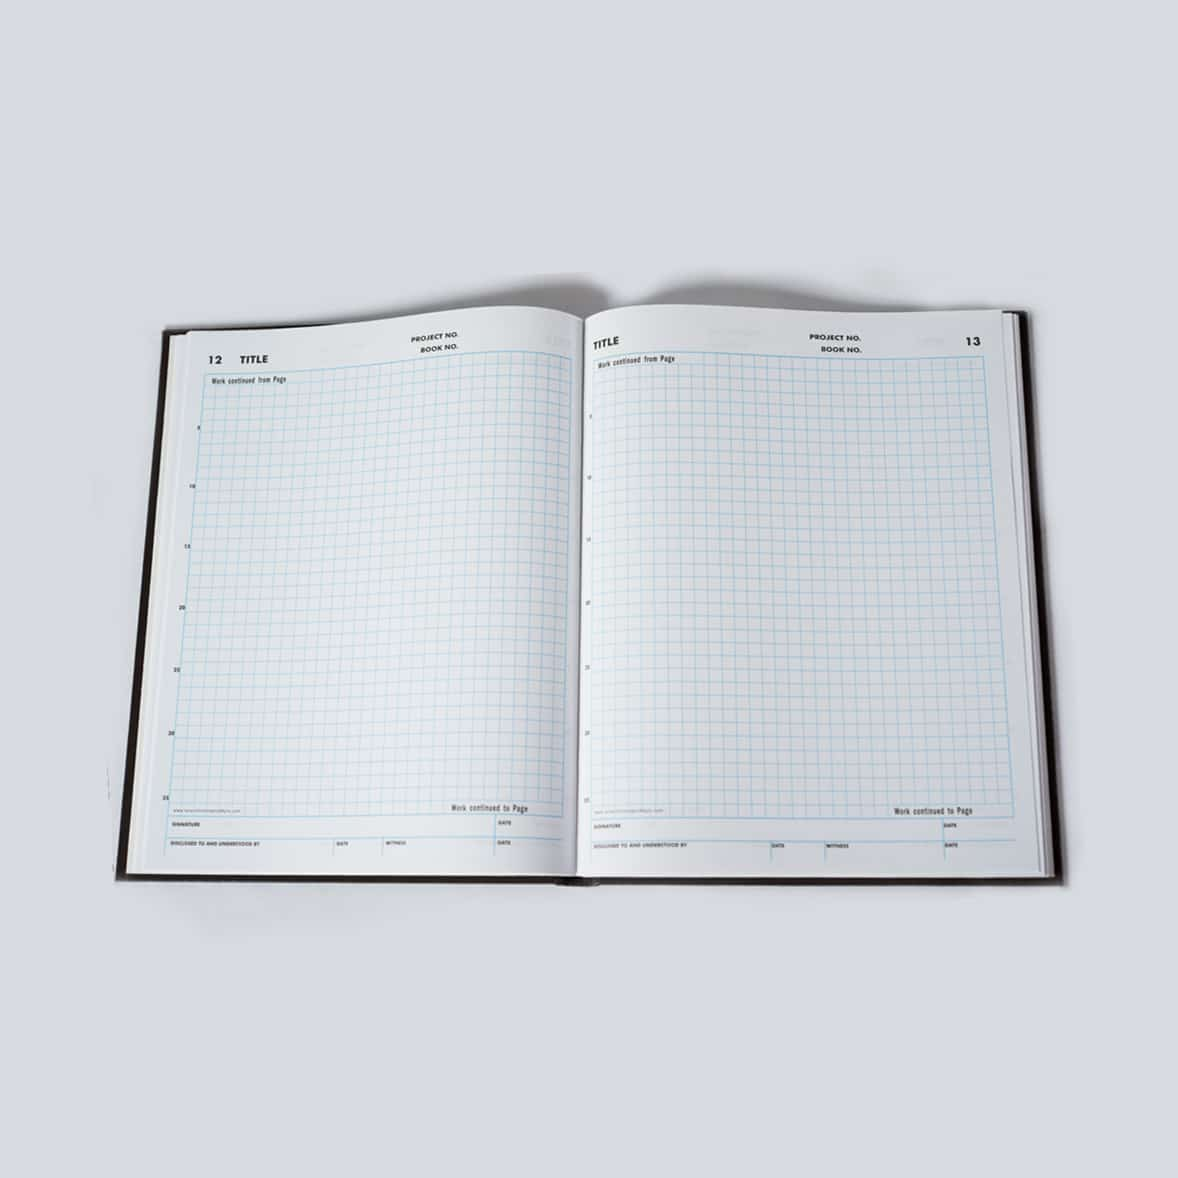 96 Page Grid Notebook Laboratory Notebook or Patent Related Research Notebook - Scientific Bindery